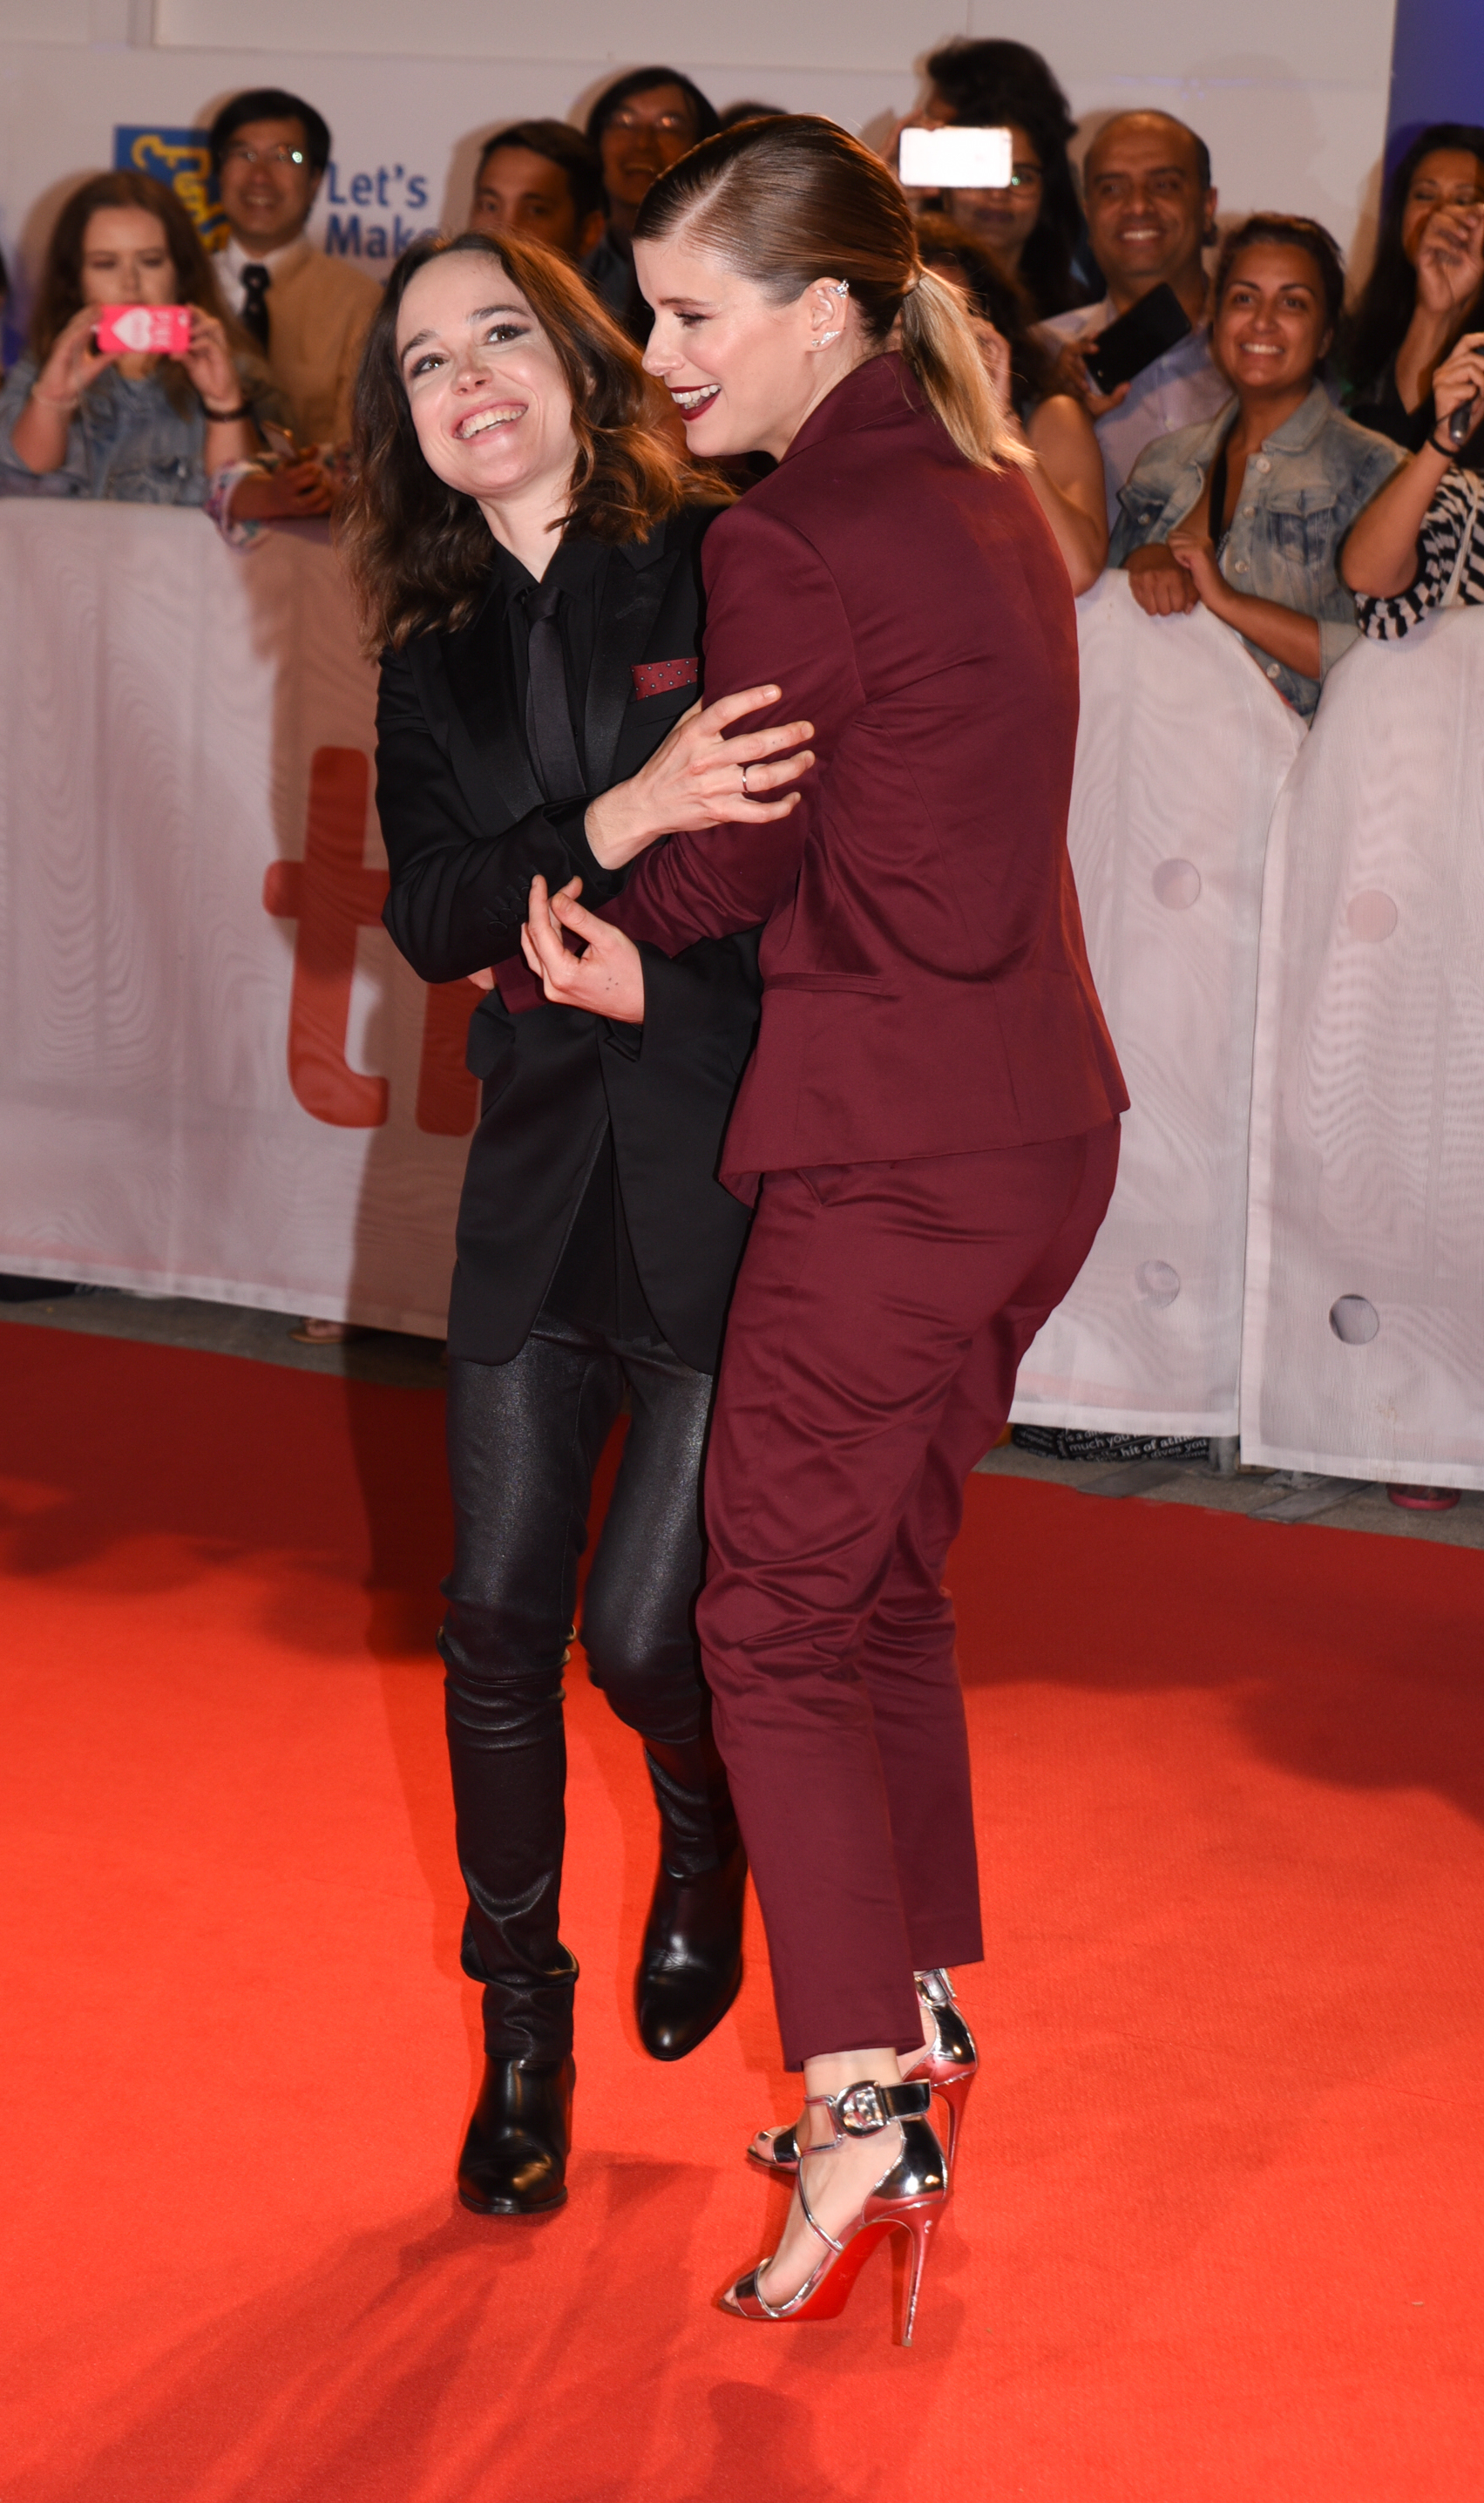 42nd Toronto International Film Festival - 'My Days of Mercy' - Premiere  Featuring: Kate Mara, Ellen Page Where: Toronto, Canada When: 15 Sep 2017 Credit: Jaime Espinoza/WENN.com